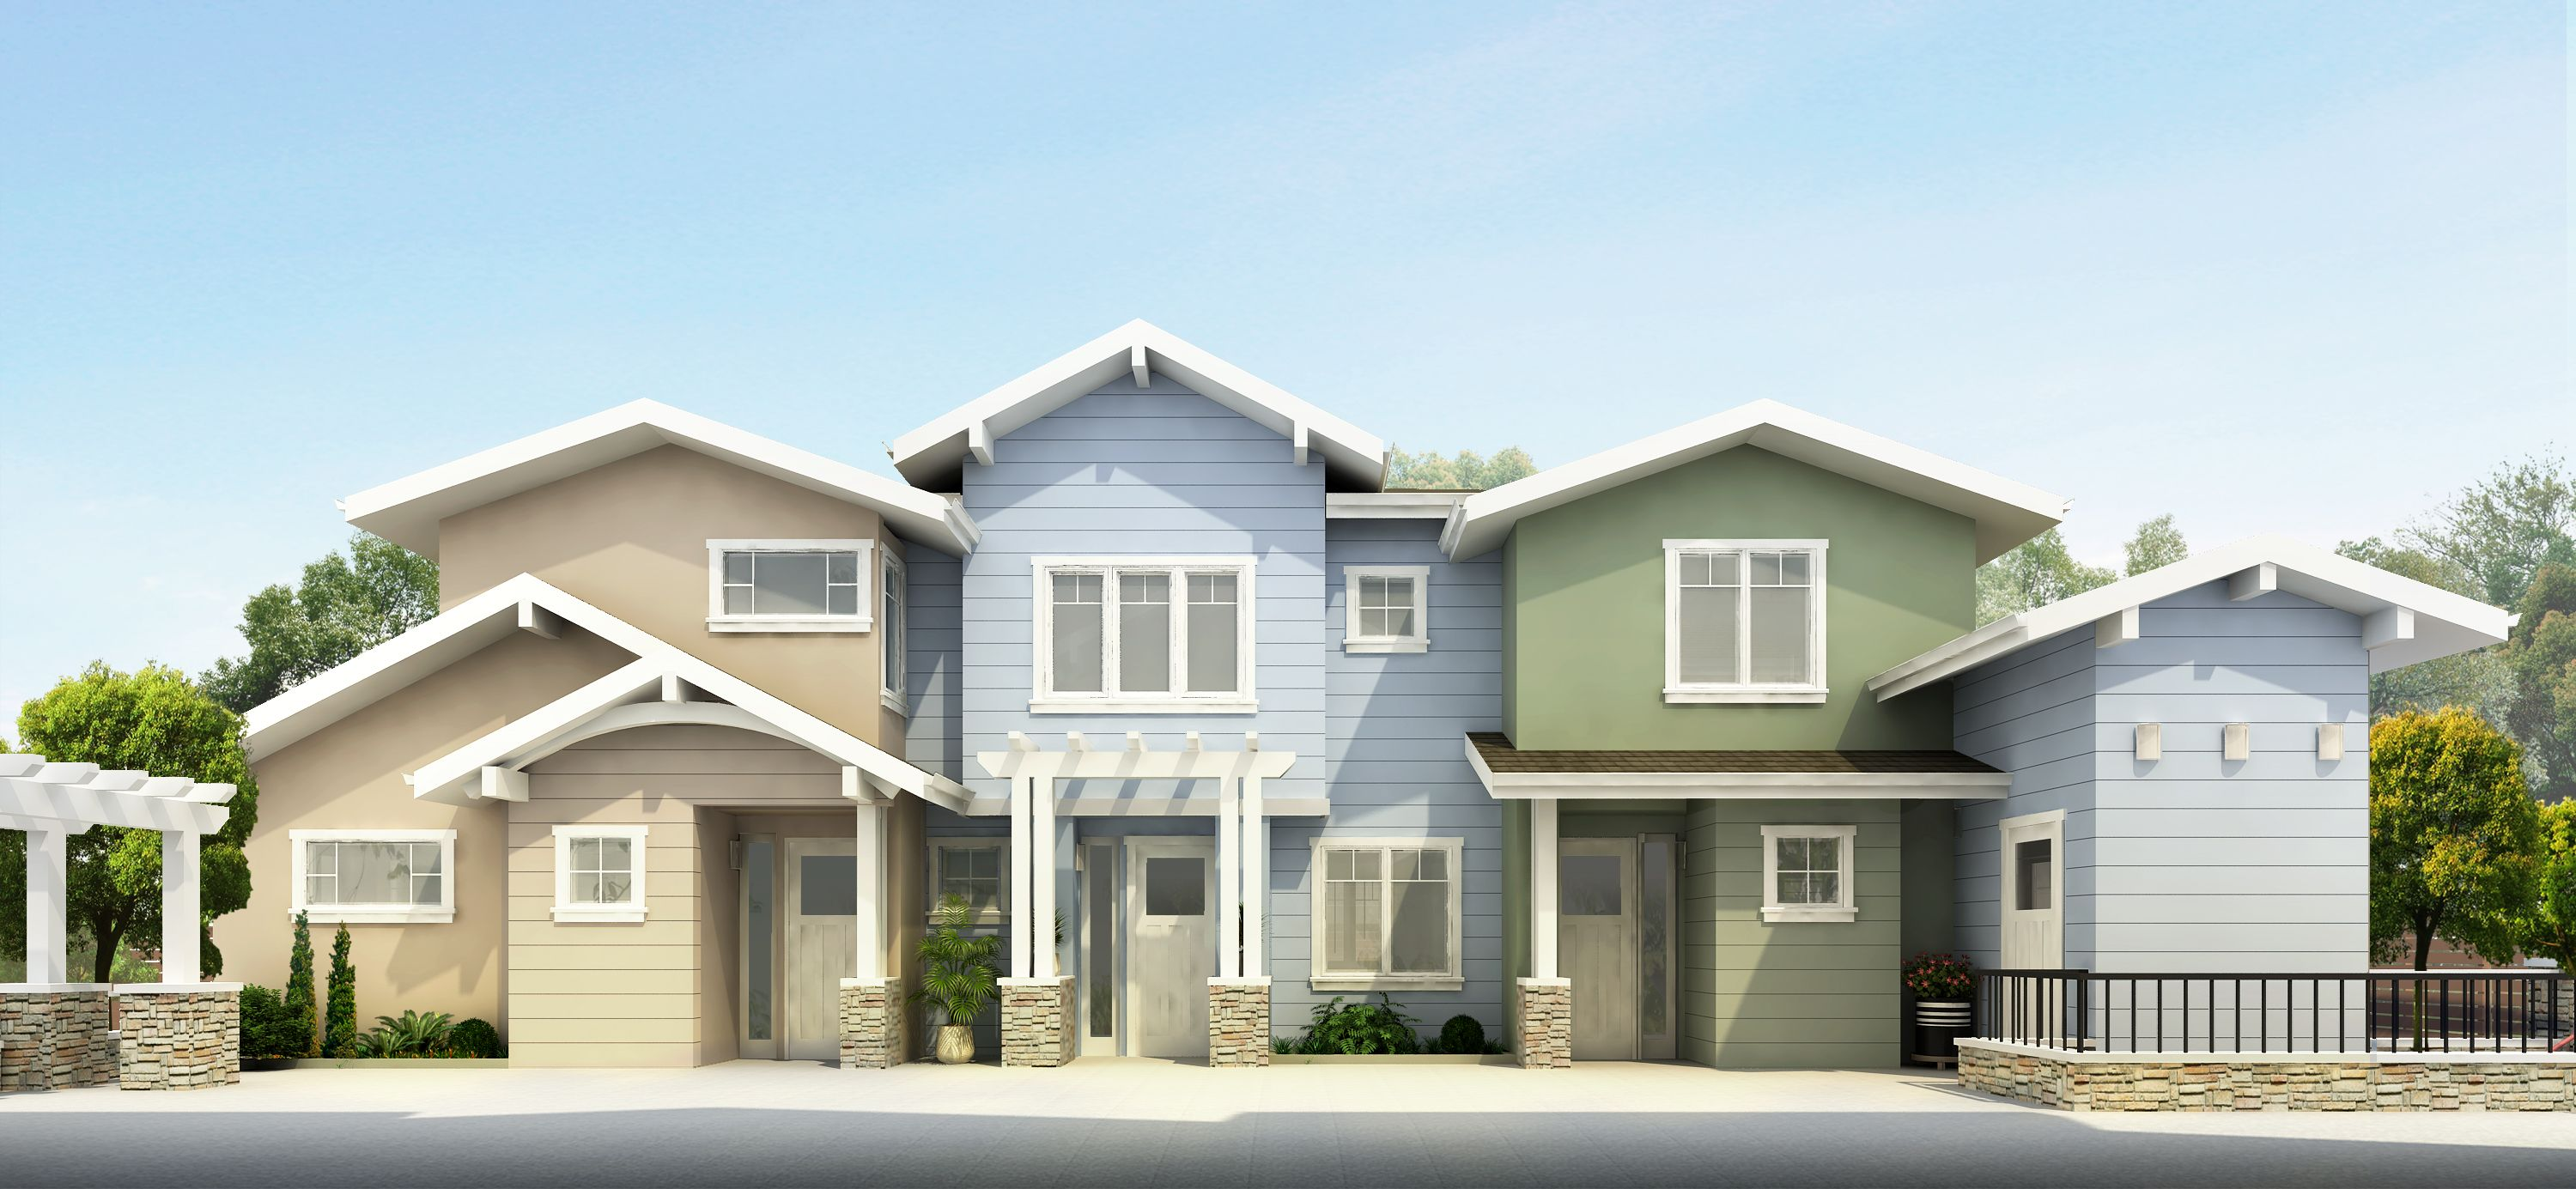 Exterior featured in the Unit 6 By Flynn Town Home Estates  in San Jose, CA